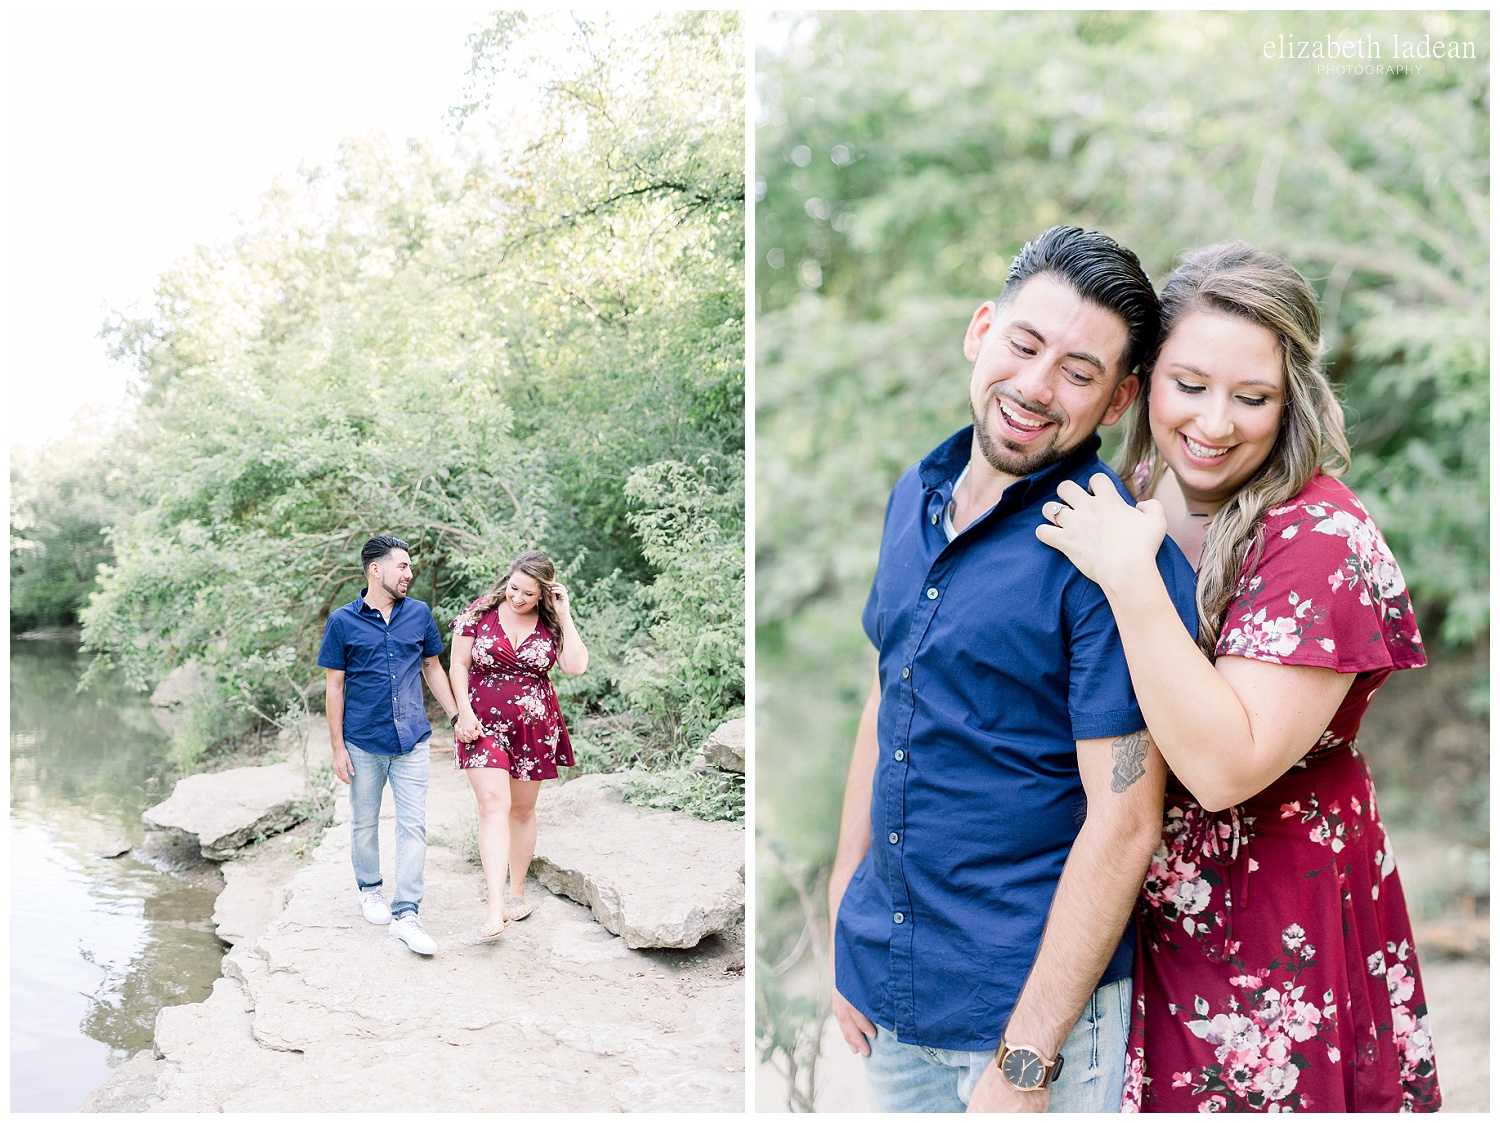 adventurous-engagement-photography-kansas-city-J+R2018-elizabeth-ladean-photography-photo-_9516.jpg